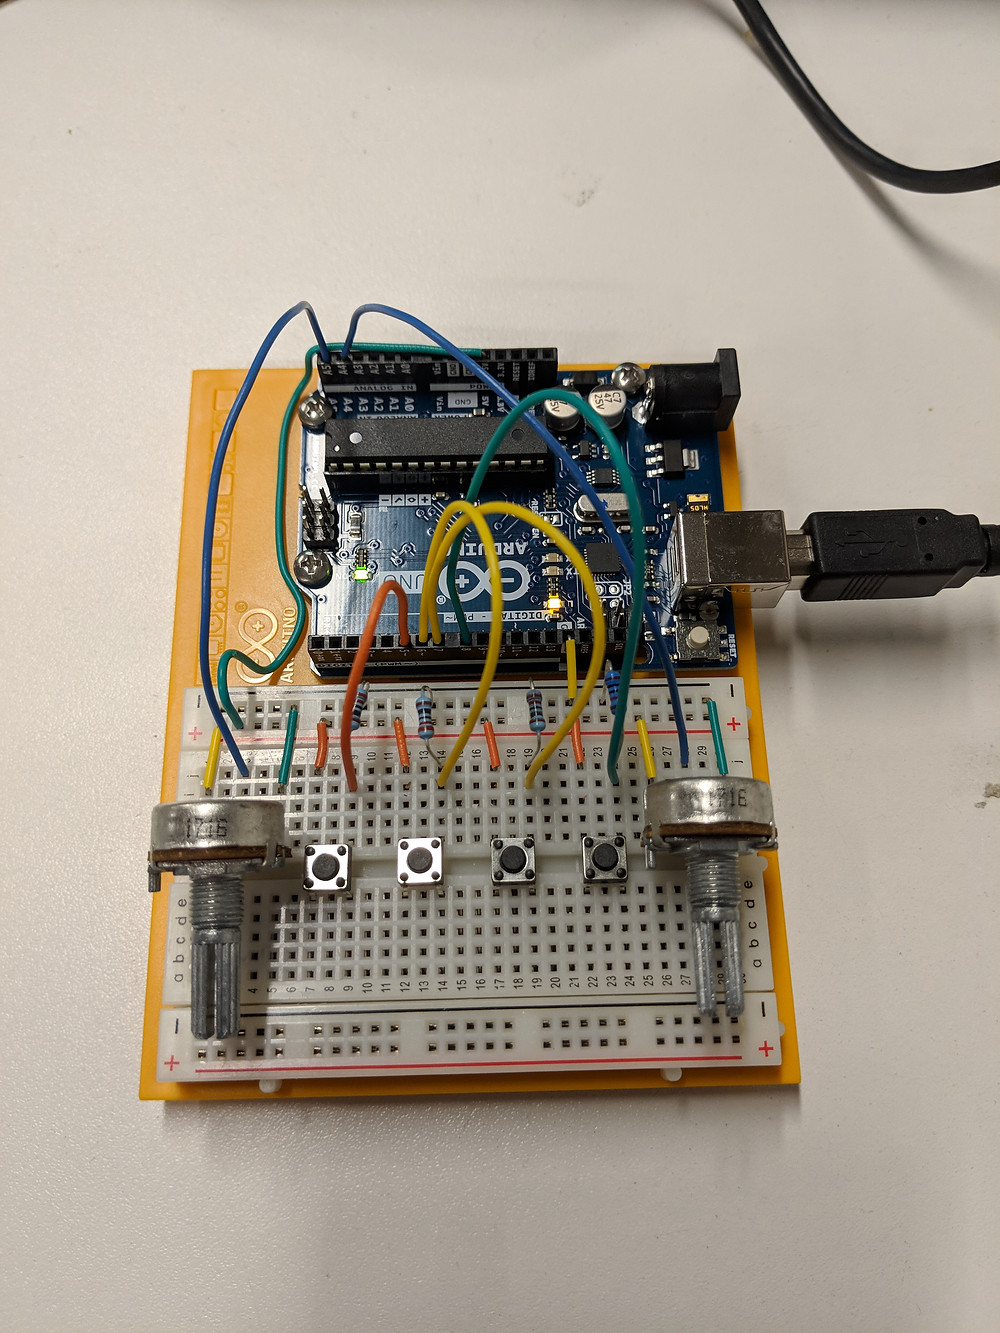 An Arduino Uno connected to a circuit